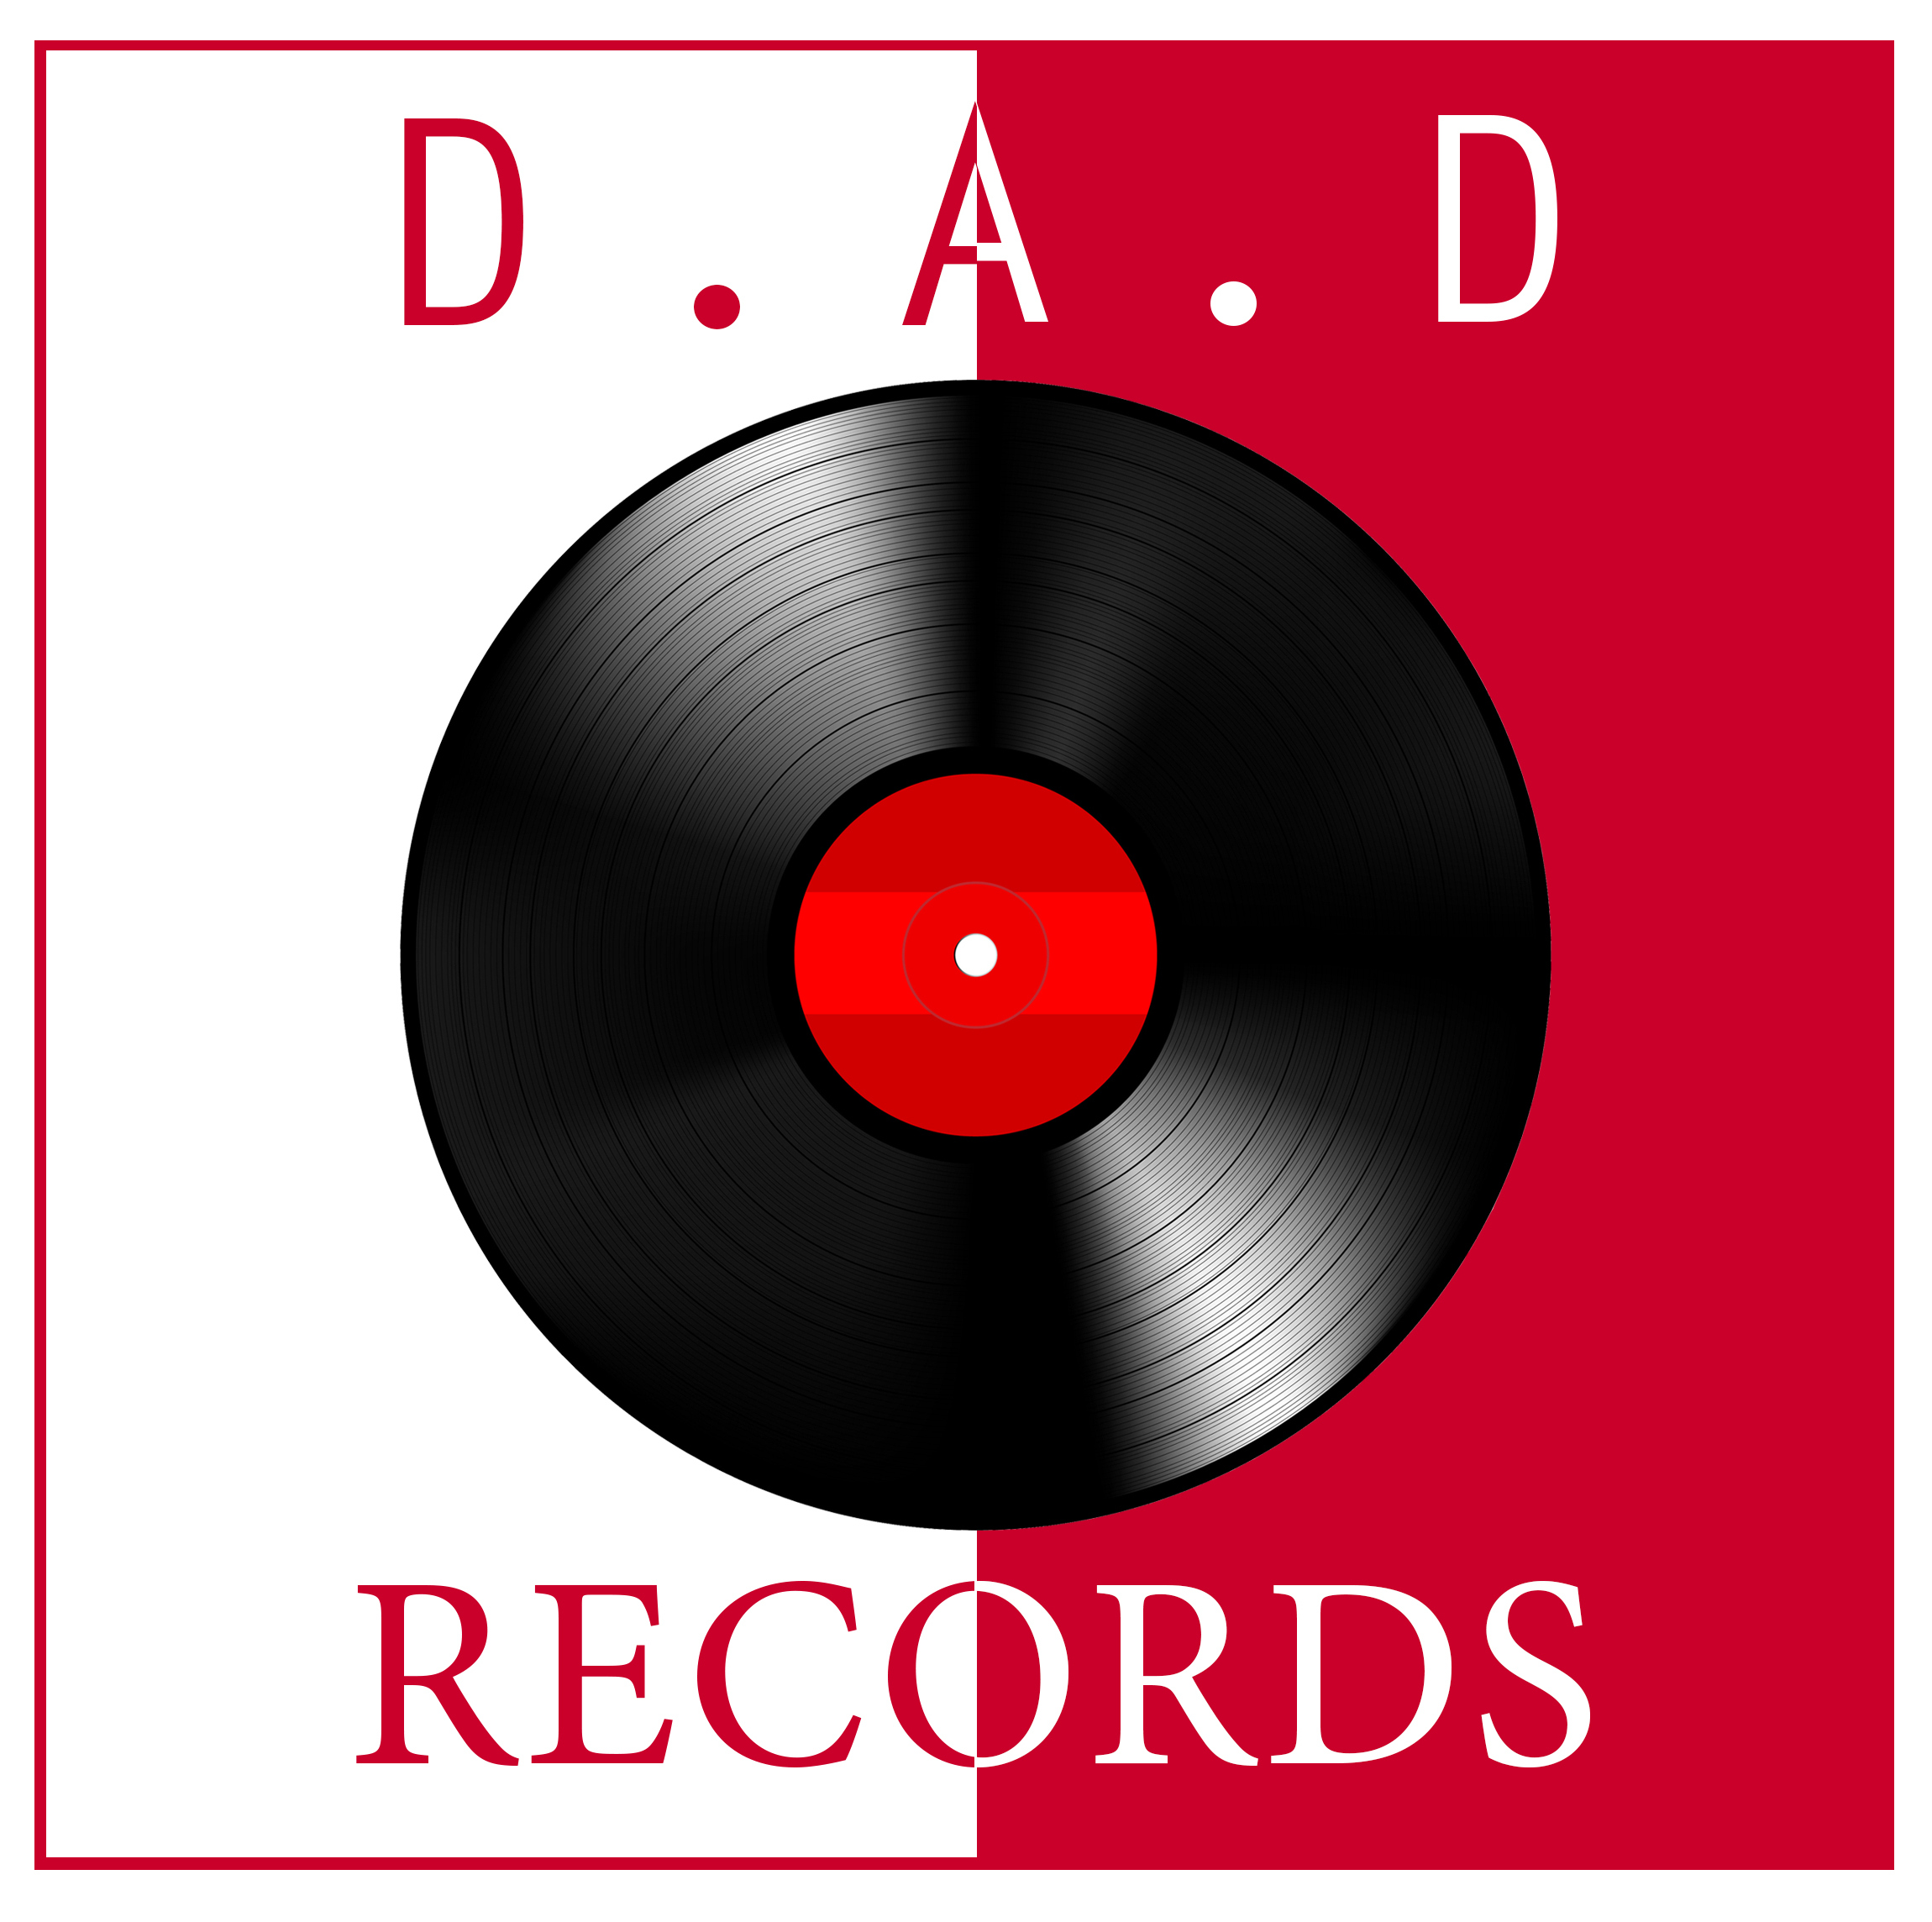 DAD RECORDS - Our Project Sponosrs